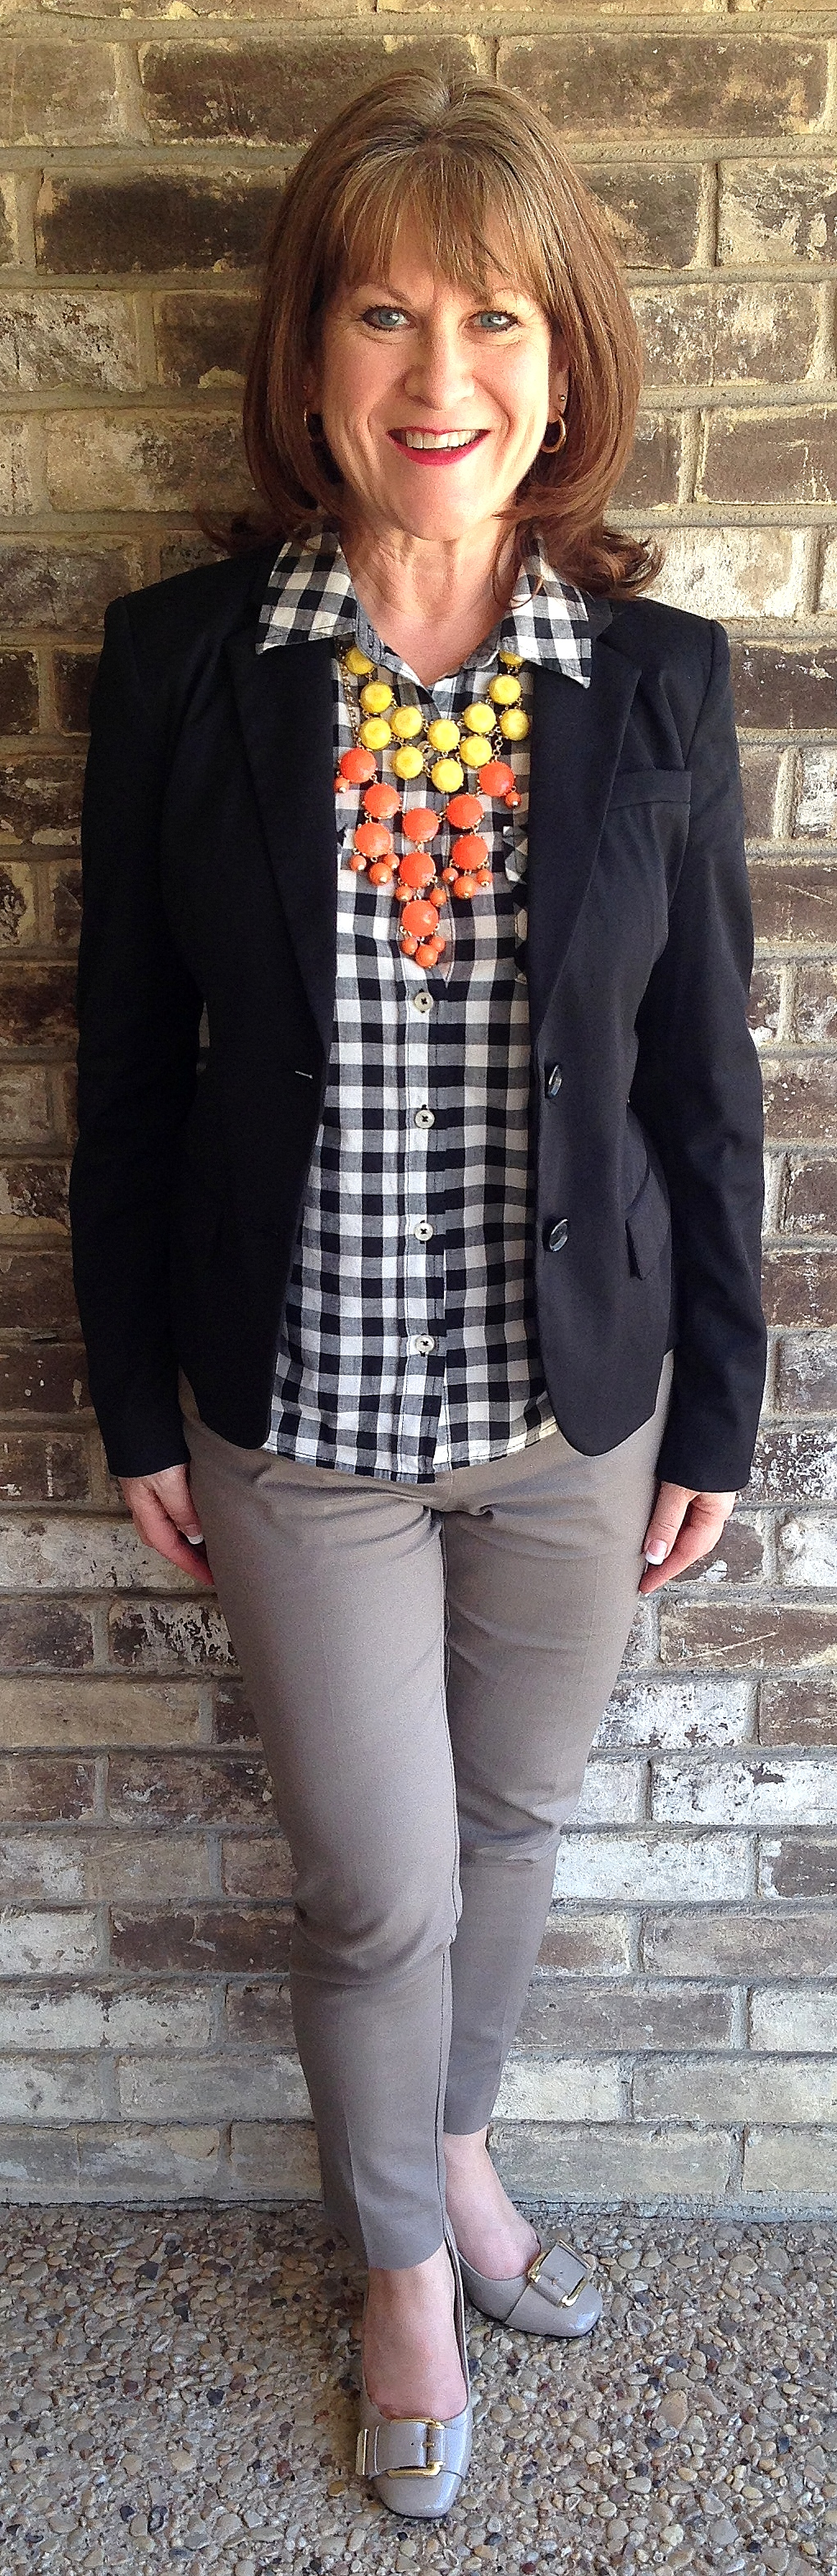 Casual fashion for over 60 - Checkers